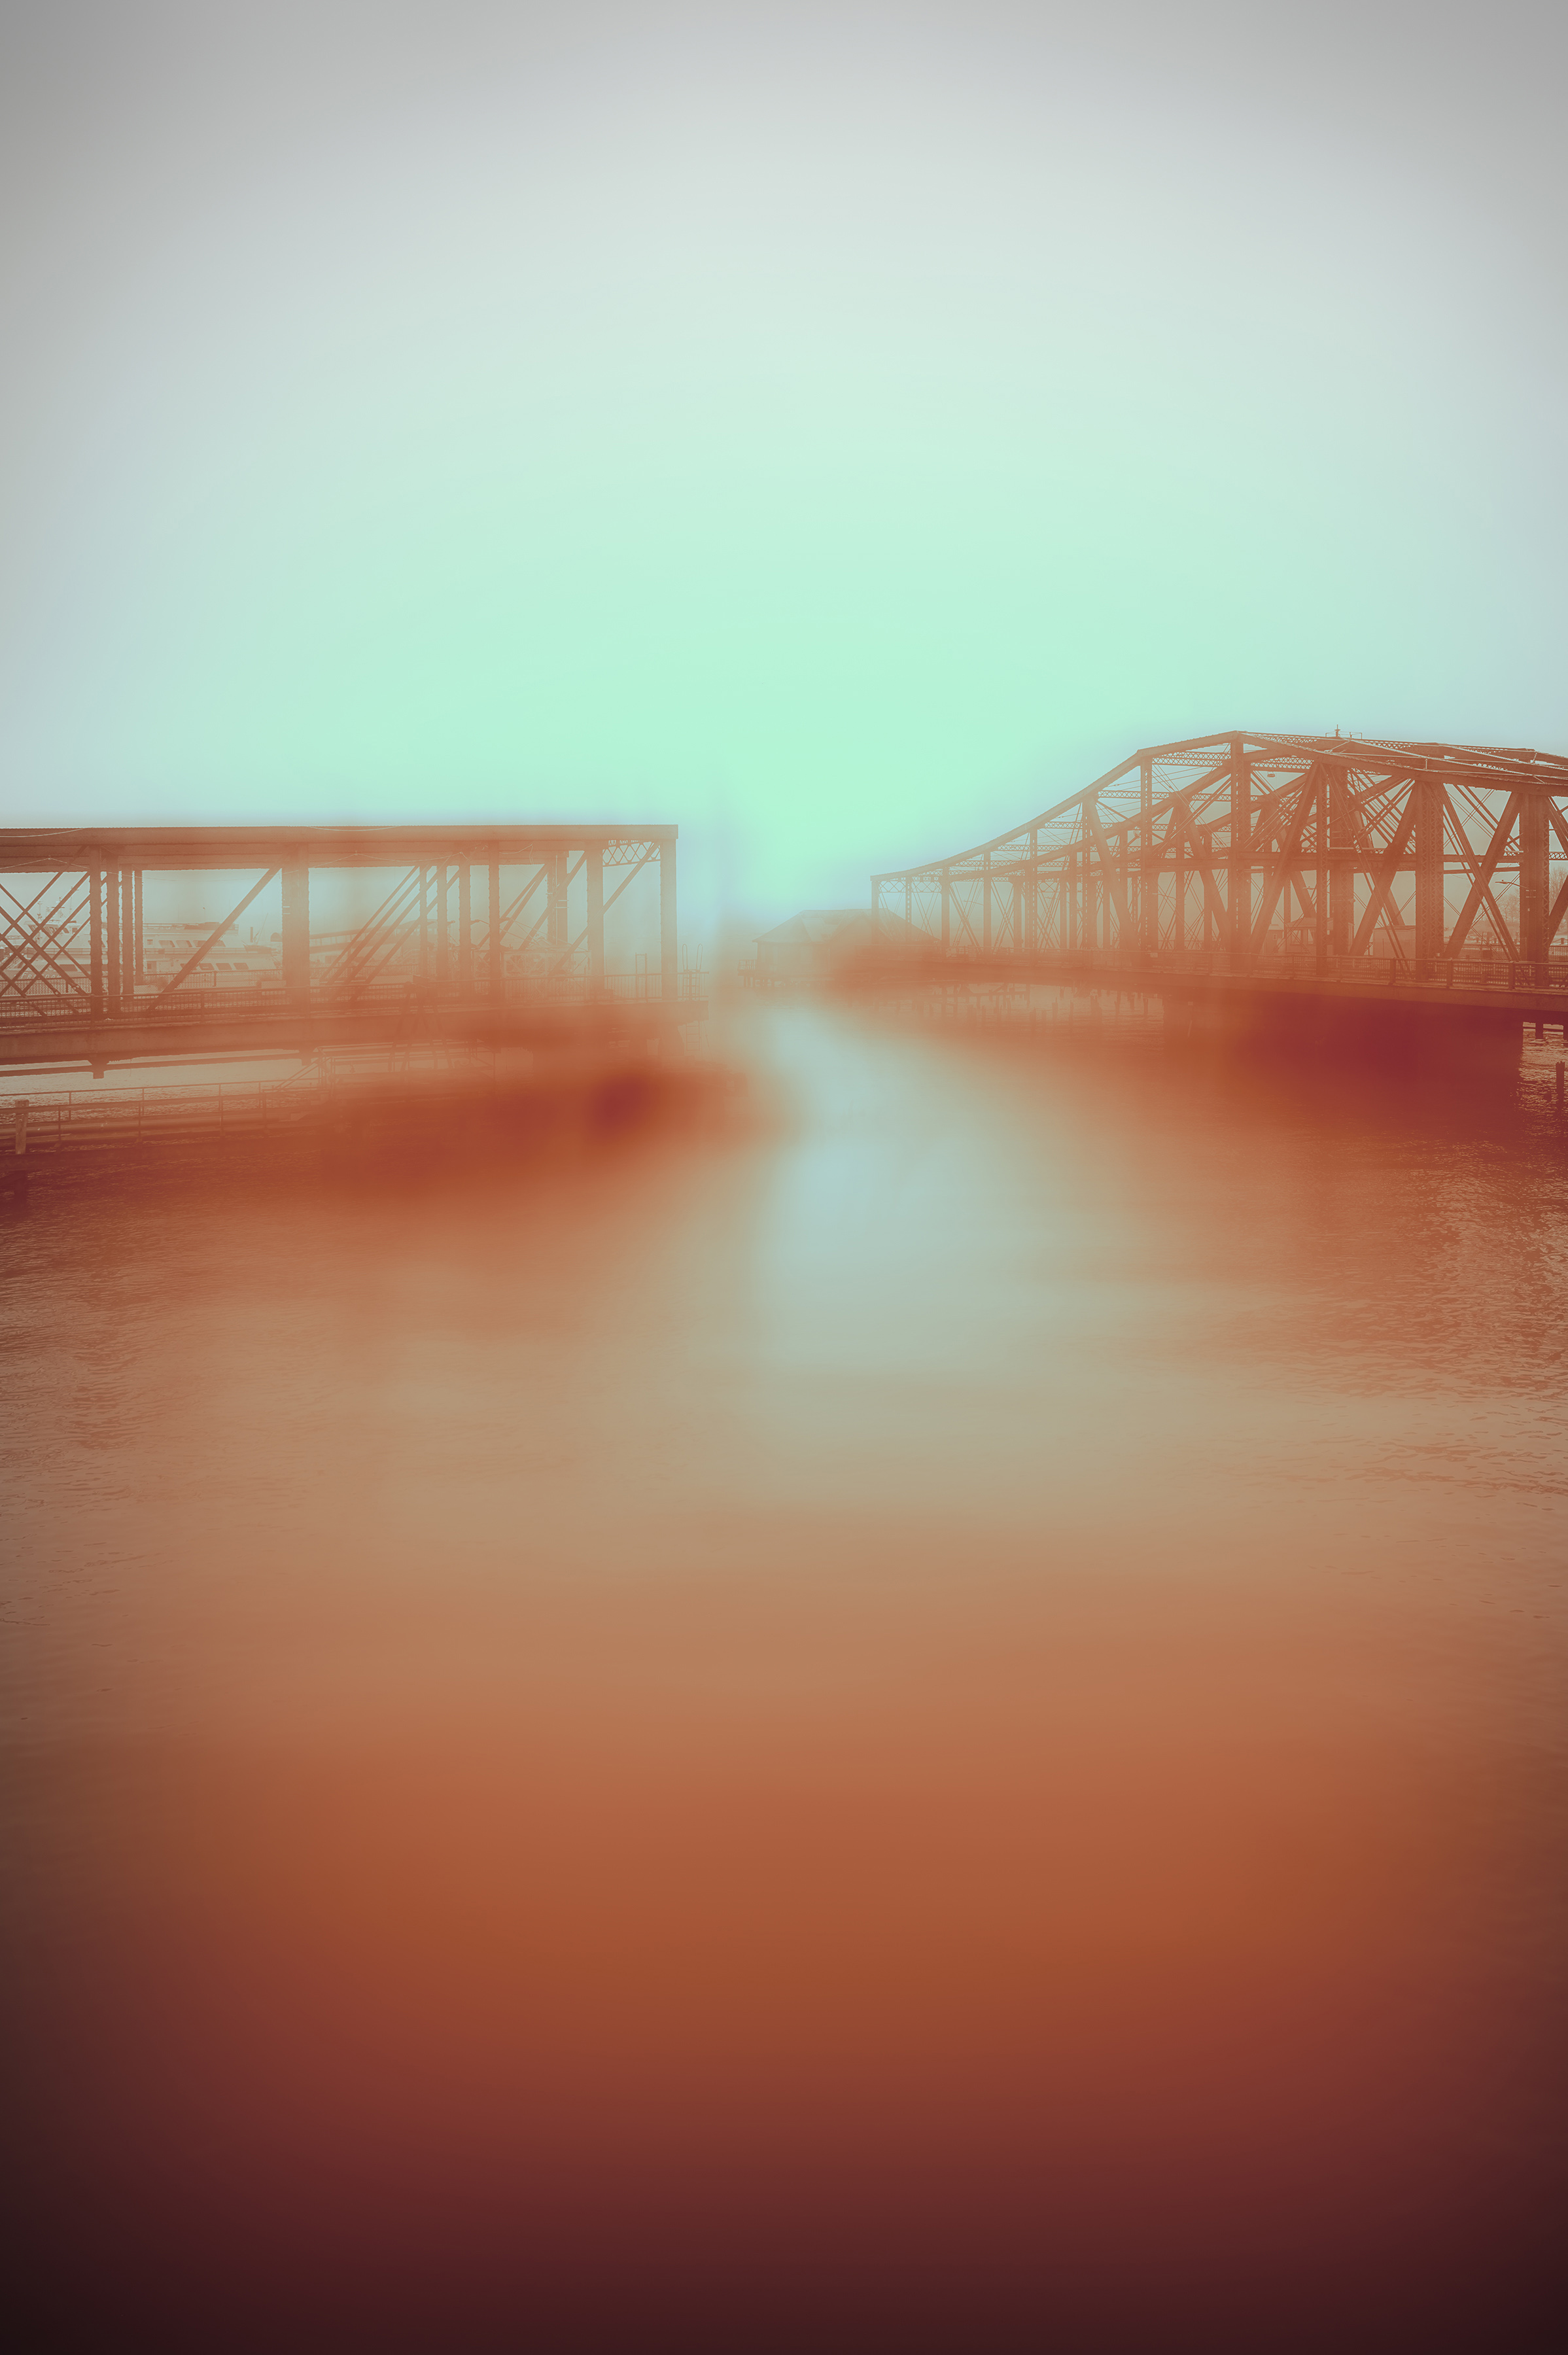 "Bridge with Raw Sienna 8:32 am , digital photograph on plexiglass, 24"" x 16"", $900"